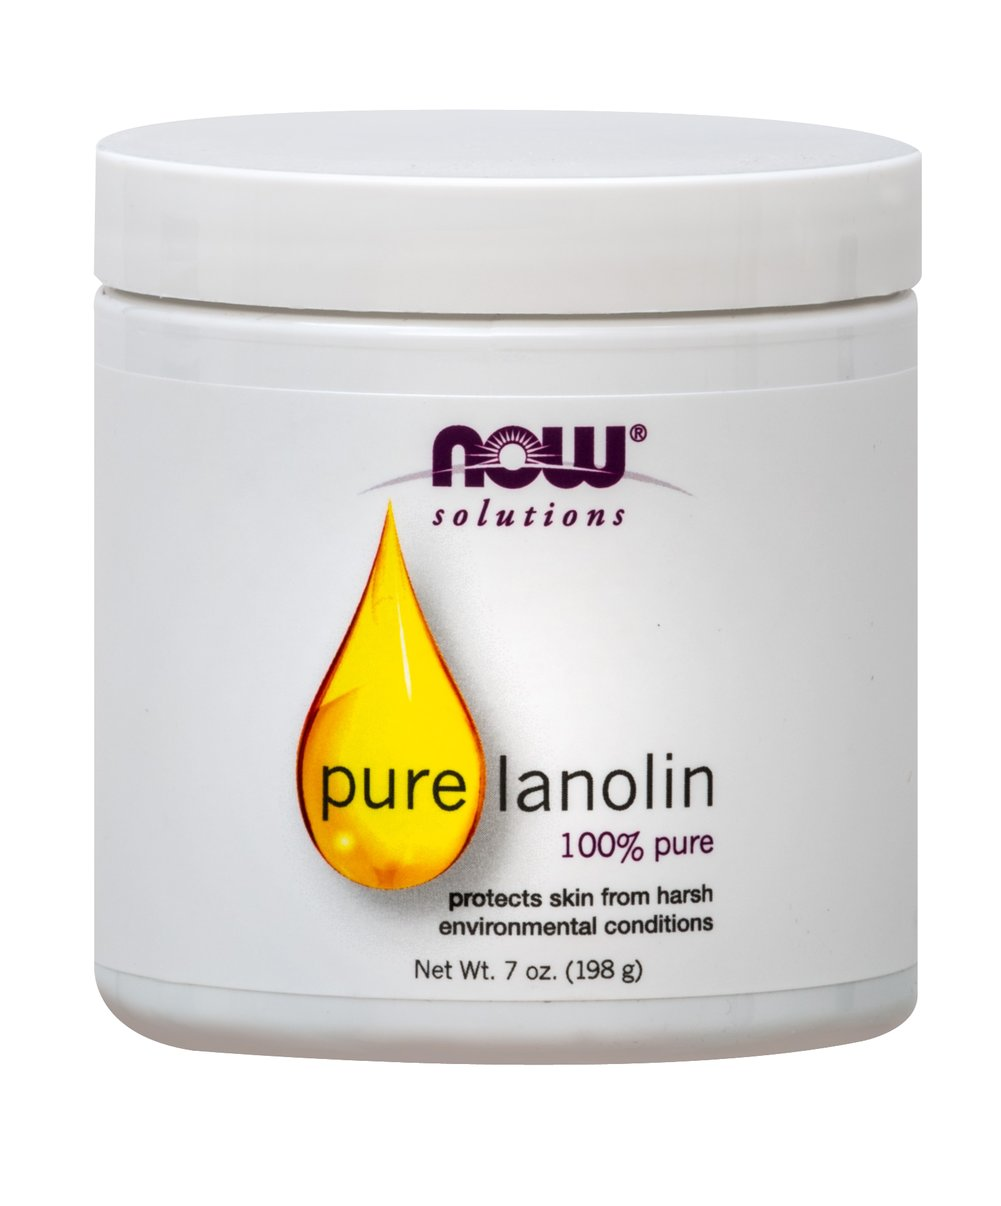 Pure Lanolin <p><b>From the Manufacturer's Label:</b></p> <p>100% Pure</p> <p>Protects chapped Skin</p> <p><b>Condition:</b> Skin in need of protection from wind burn and environmental factors.</p> <p><b>Solution:</b> Pure Lanolin is a powerful, natural moisturizer that can promote the smoothness and translucency associated with healthy, youthful skin. Derived from the wool of sheep, lanolin is remarkab